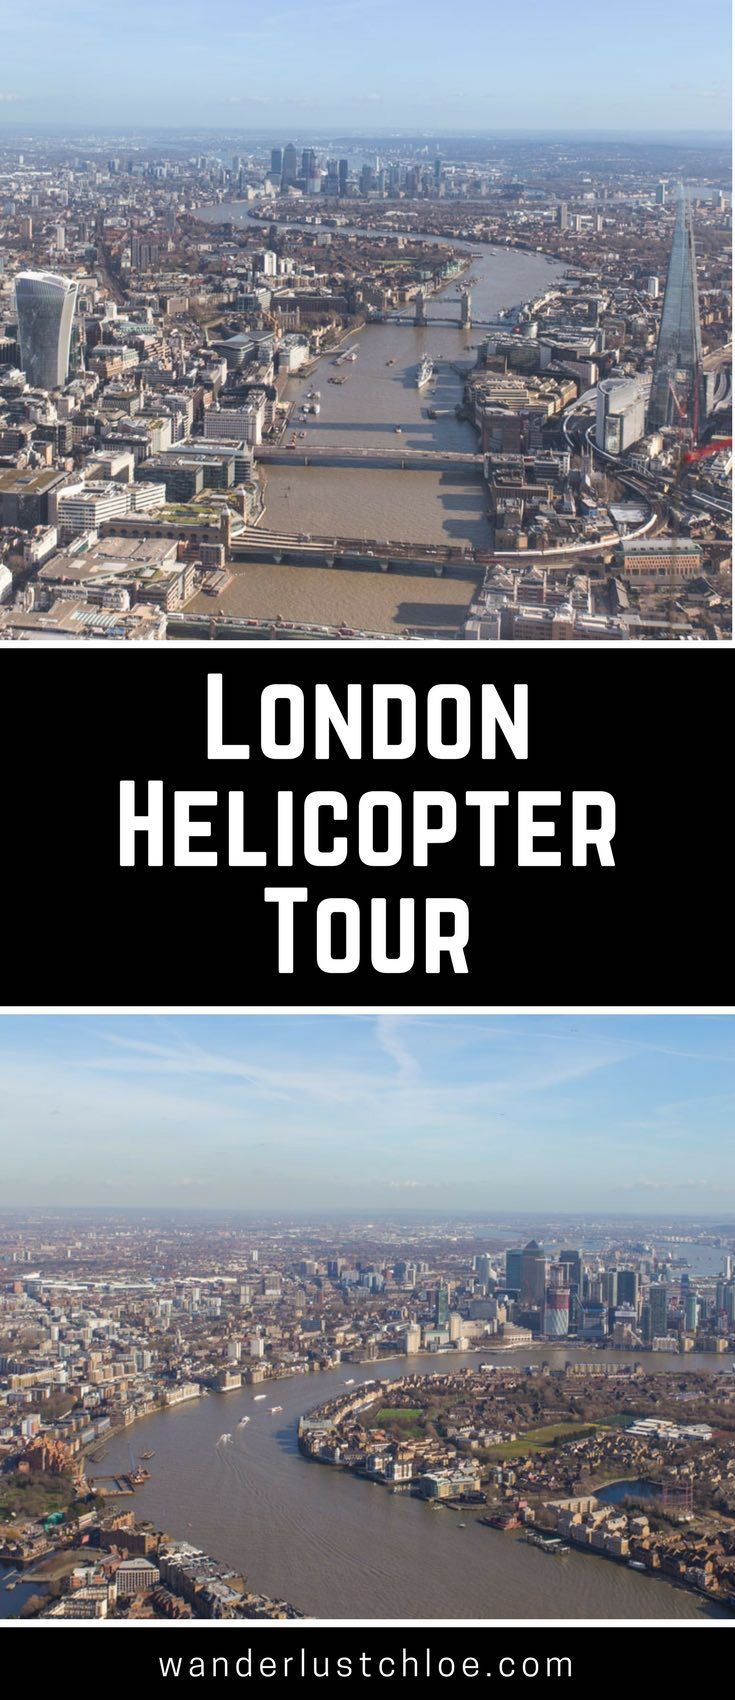 Helicopter Tour Of London. As bucket list activities go, a helicopter flight over London has to be one of them!From flying past Buckingham Palace, to circling the Shard and seeing the London Eye and Houses of Parliament, this is the ultimate tour of London. Find out what to expect on the day and how to book. | #helicopter #london #bucketlist #travelondon #londontravel #londonhelicopter